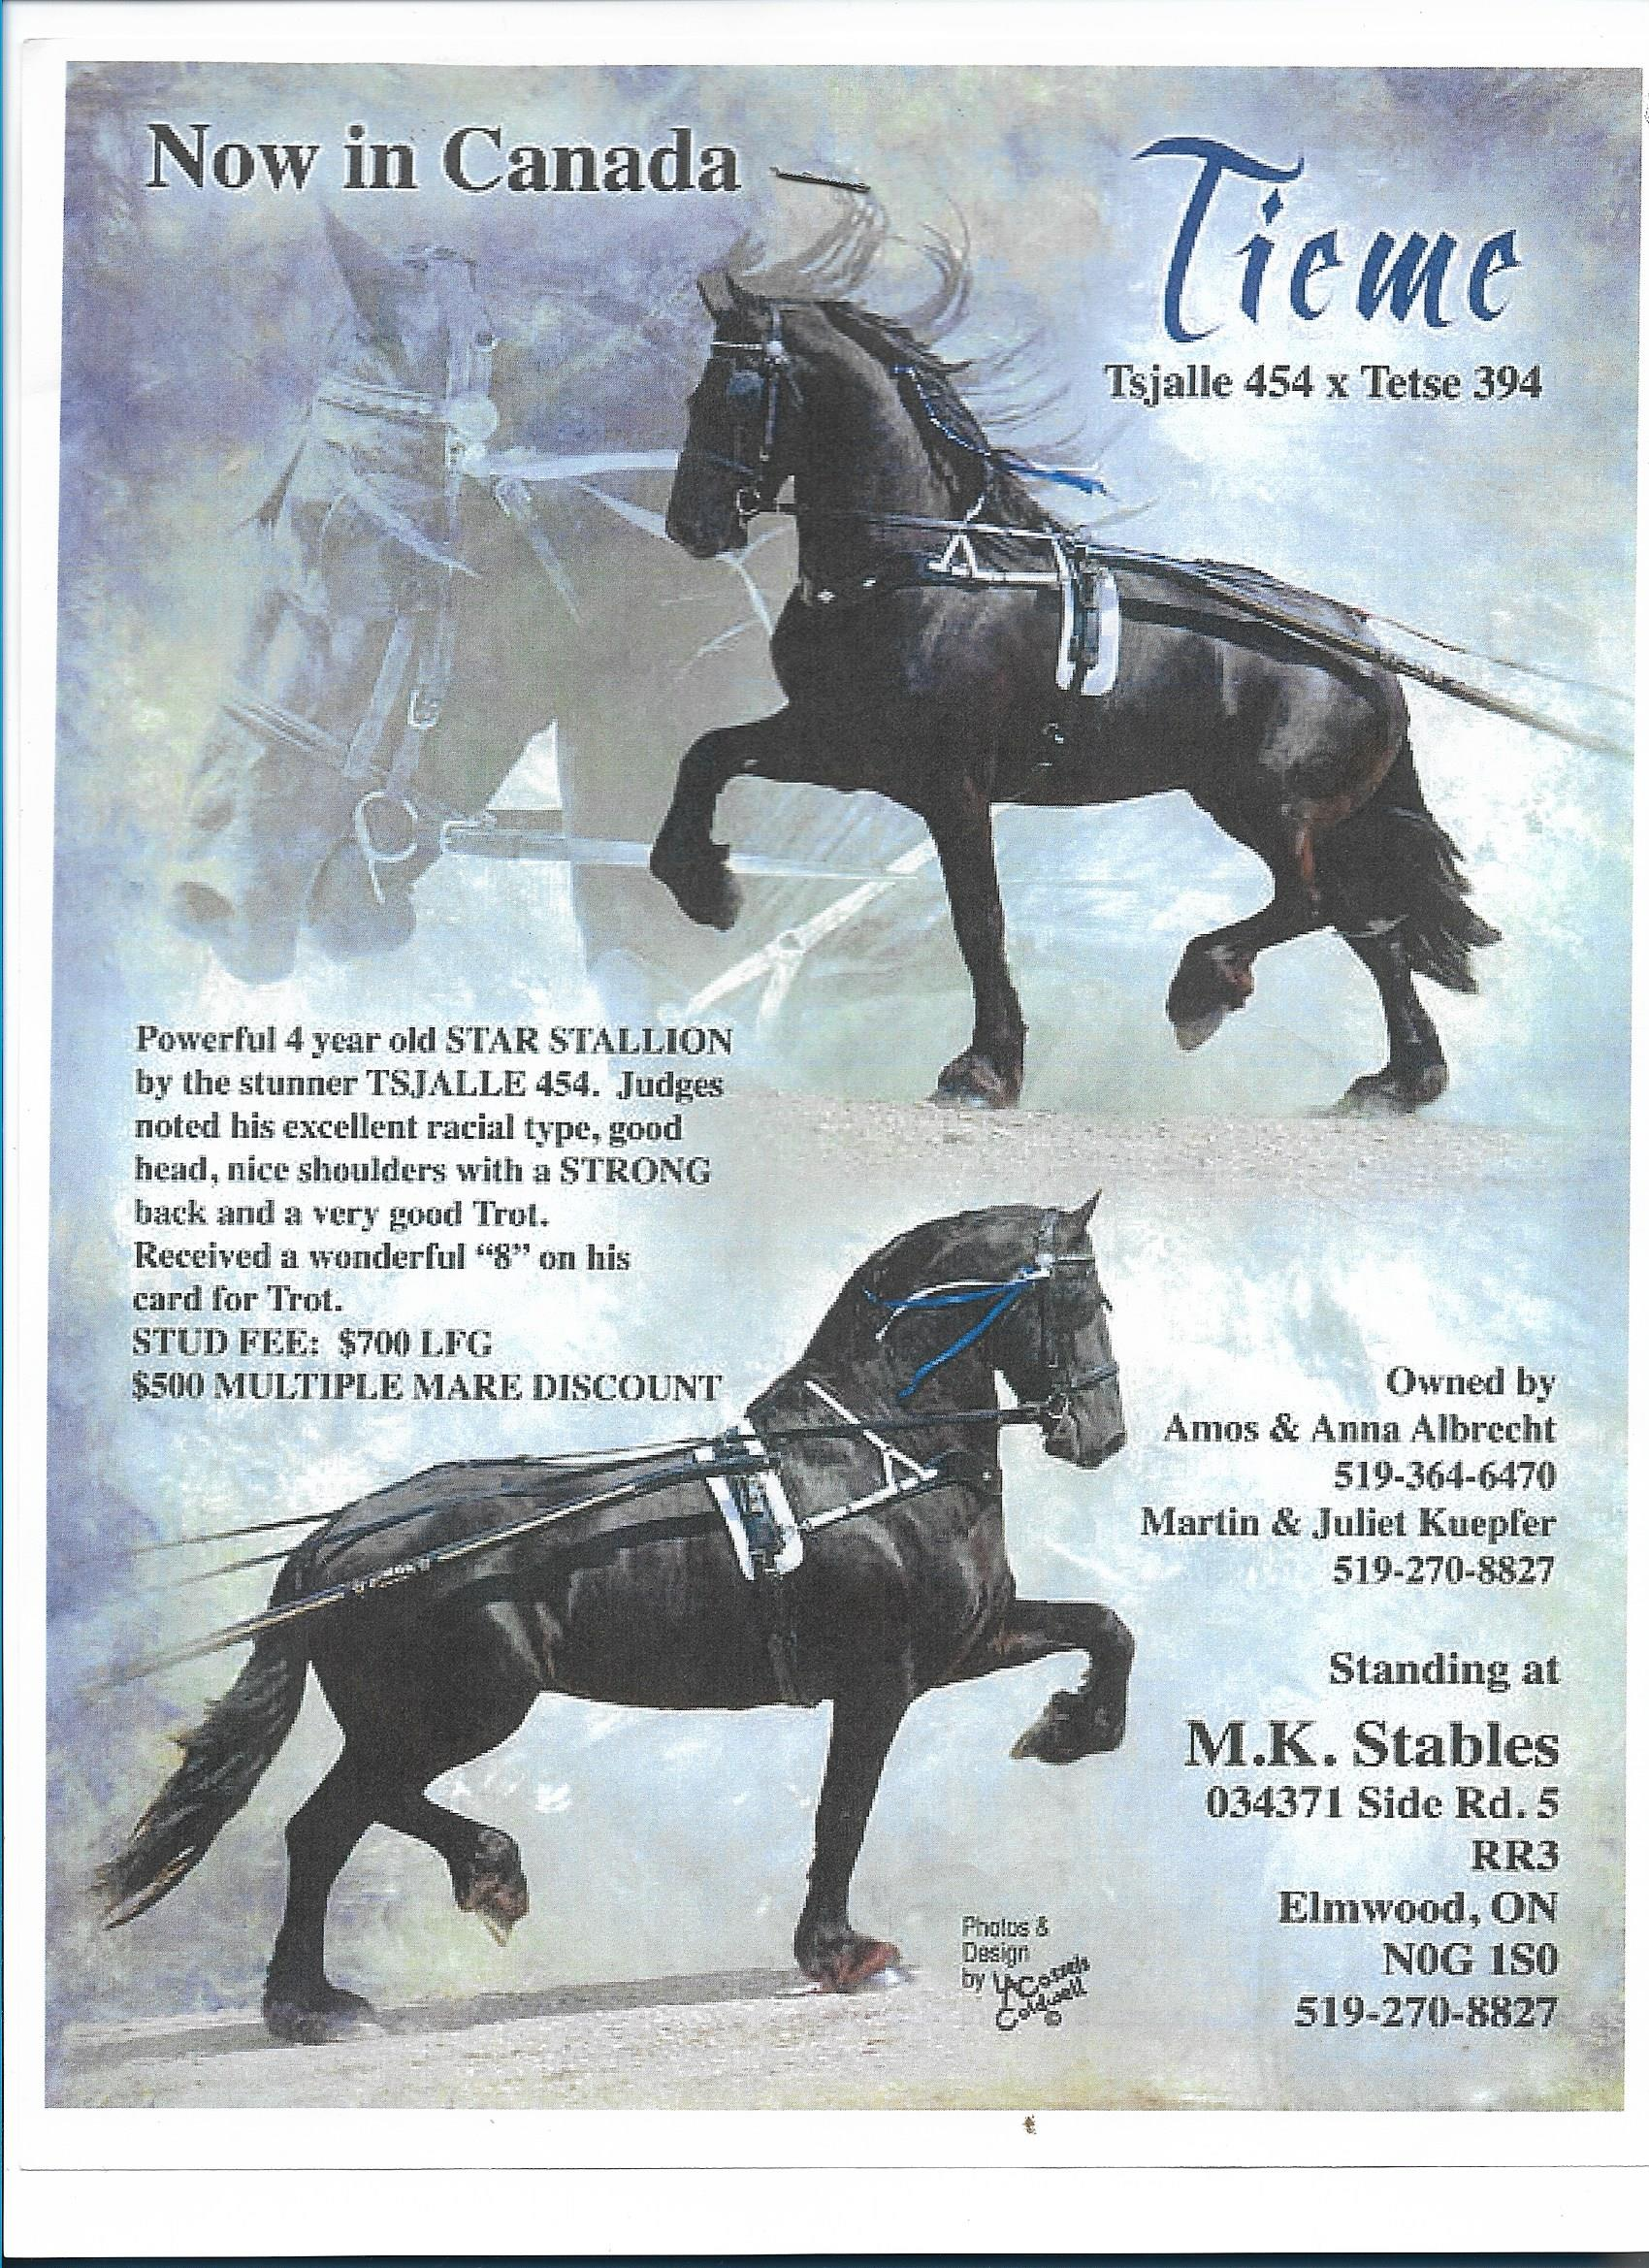 Tieme - Star Friesian Stallion